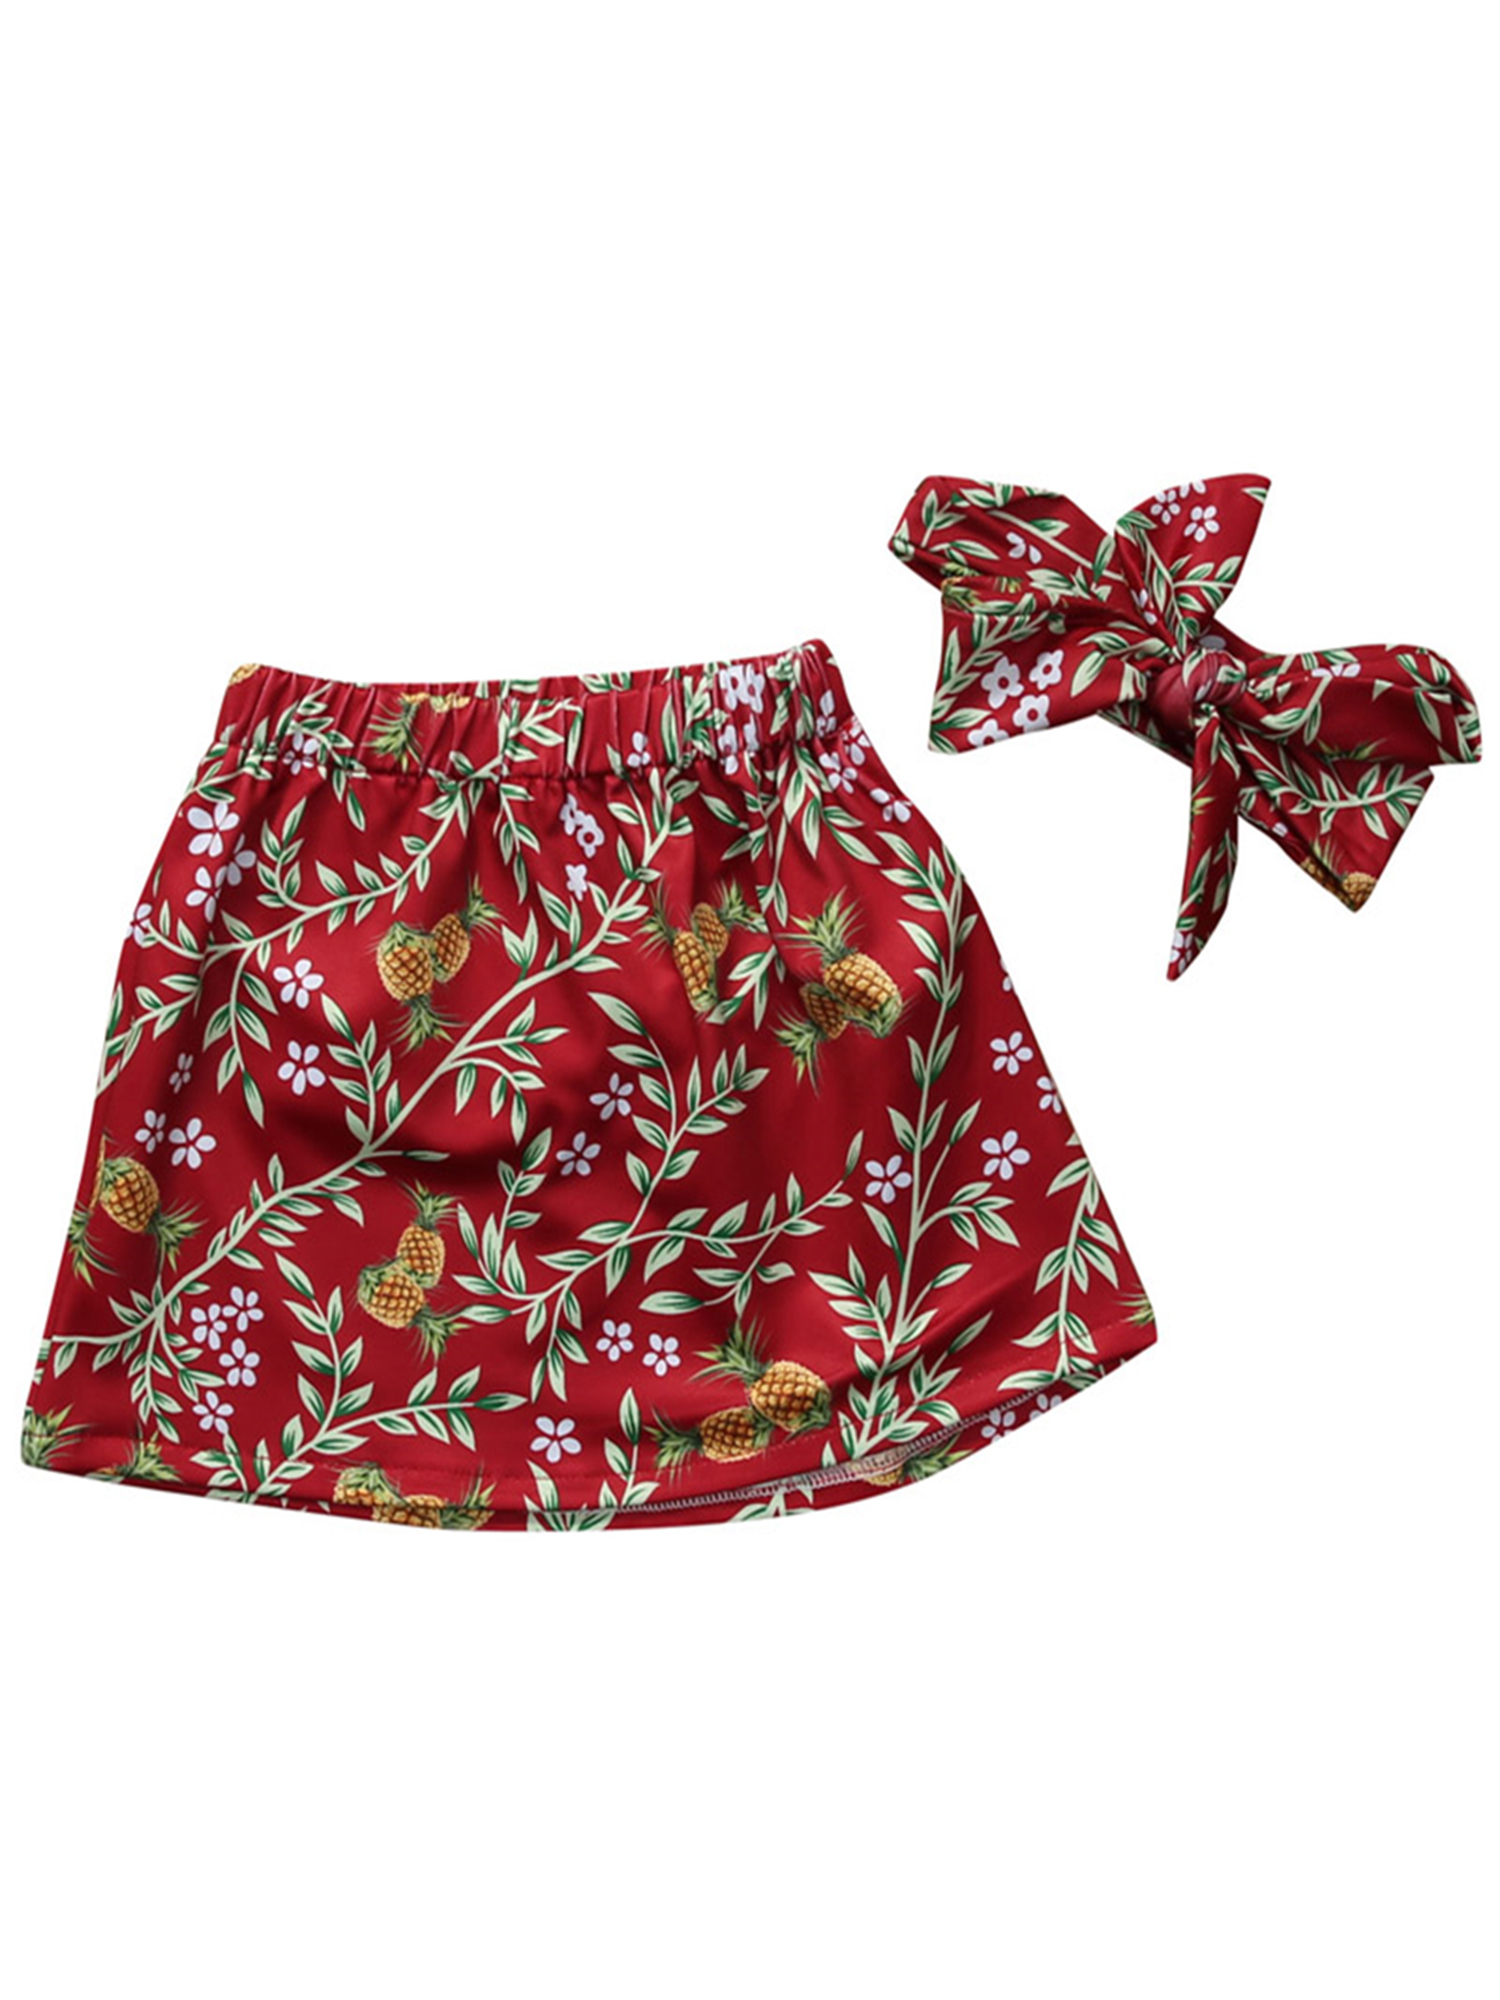 StylesILove Baby Girl Cute and Soft Floral Skirt and Headband 2-PC Set (100/2-3 Years, Burgundy)